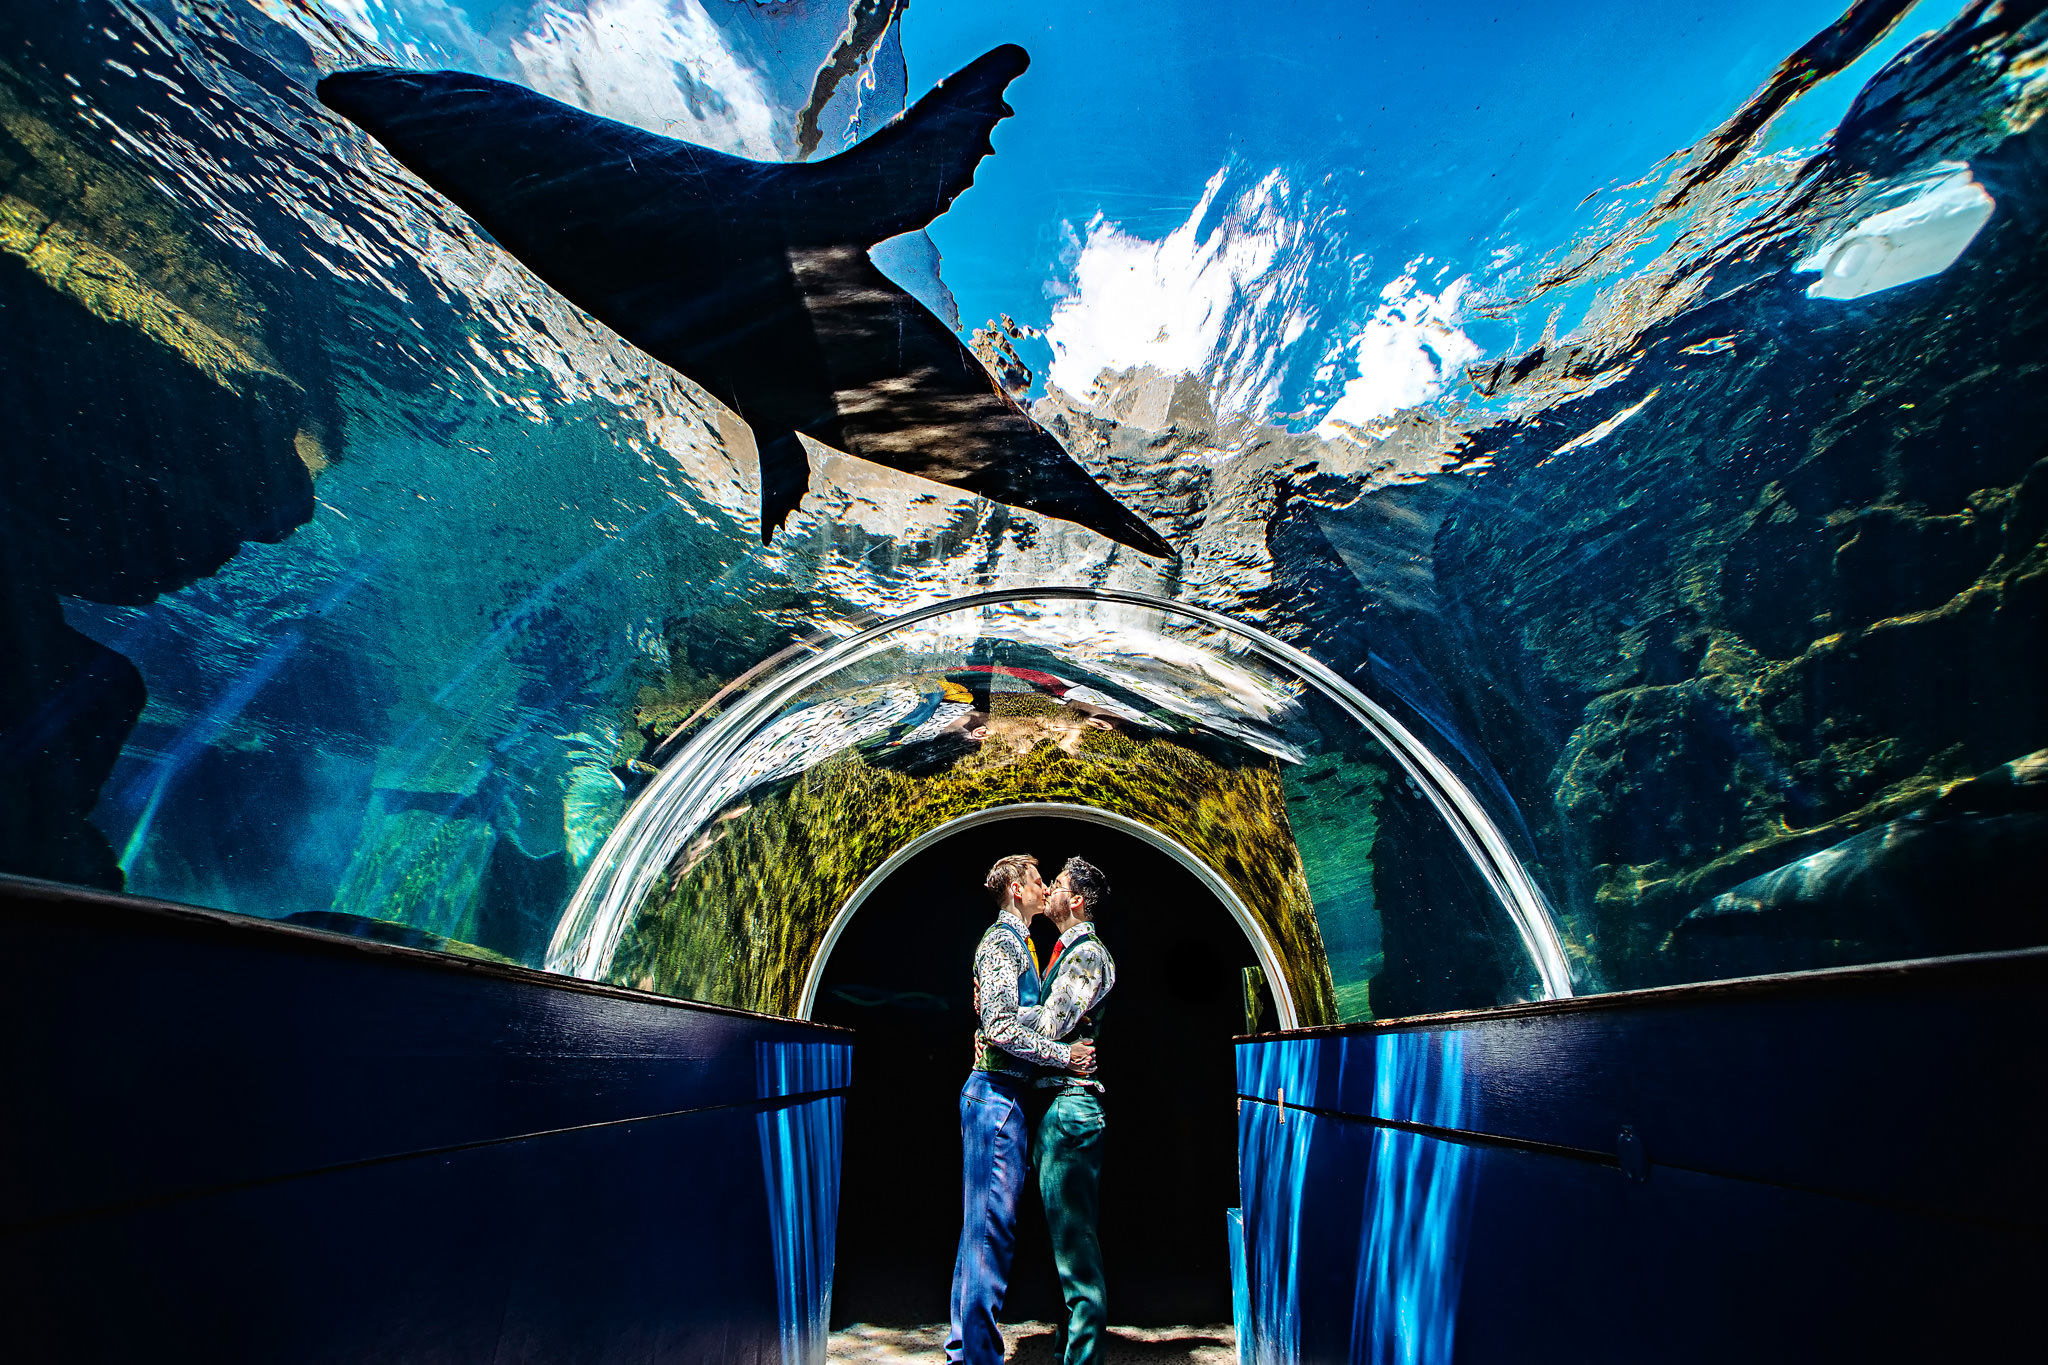 Grooms kissing underneath fish tank with dolphin- photo by Rich Howman